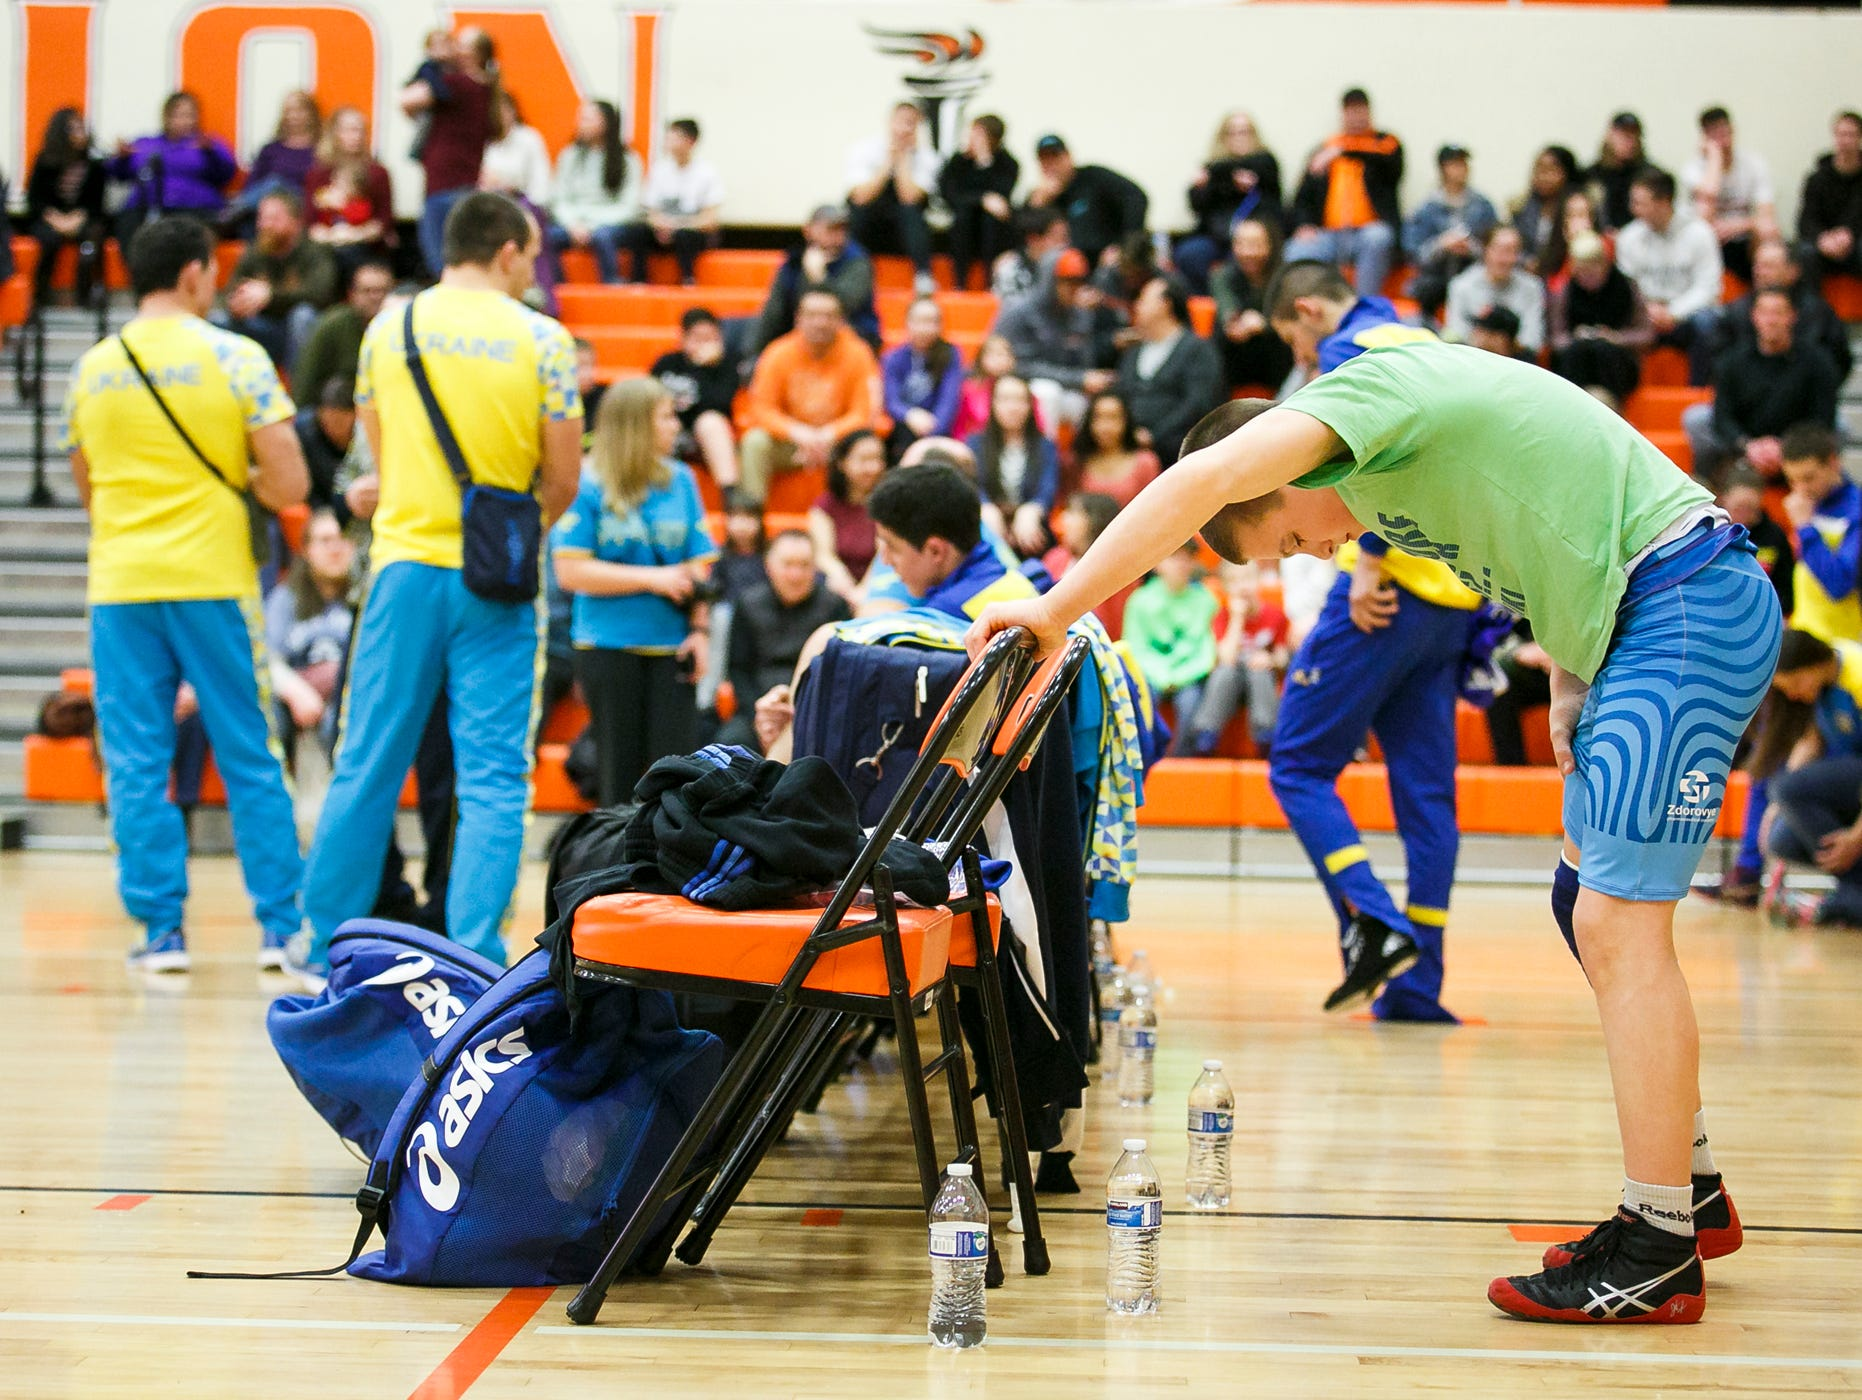 Oleh Haider from Ukraine stretches before the start of a friendly meet with Salem area All-Stars at Sprague High School on Tuesday, March 8, 2017. Haider is a member of the Ukrainian Junior National Wrestling Team, which faced Salem wrestlers in a freestyle wrestling match.